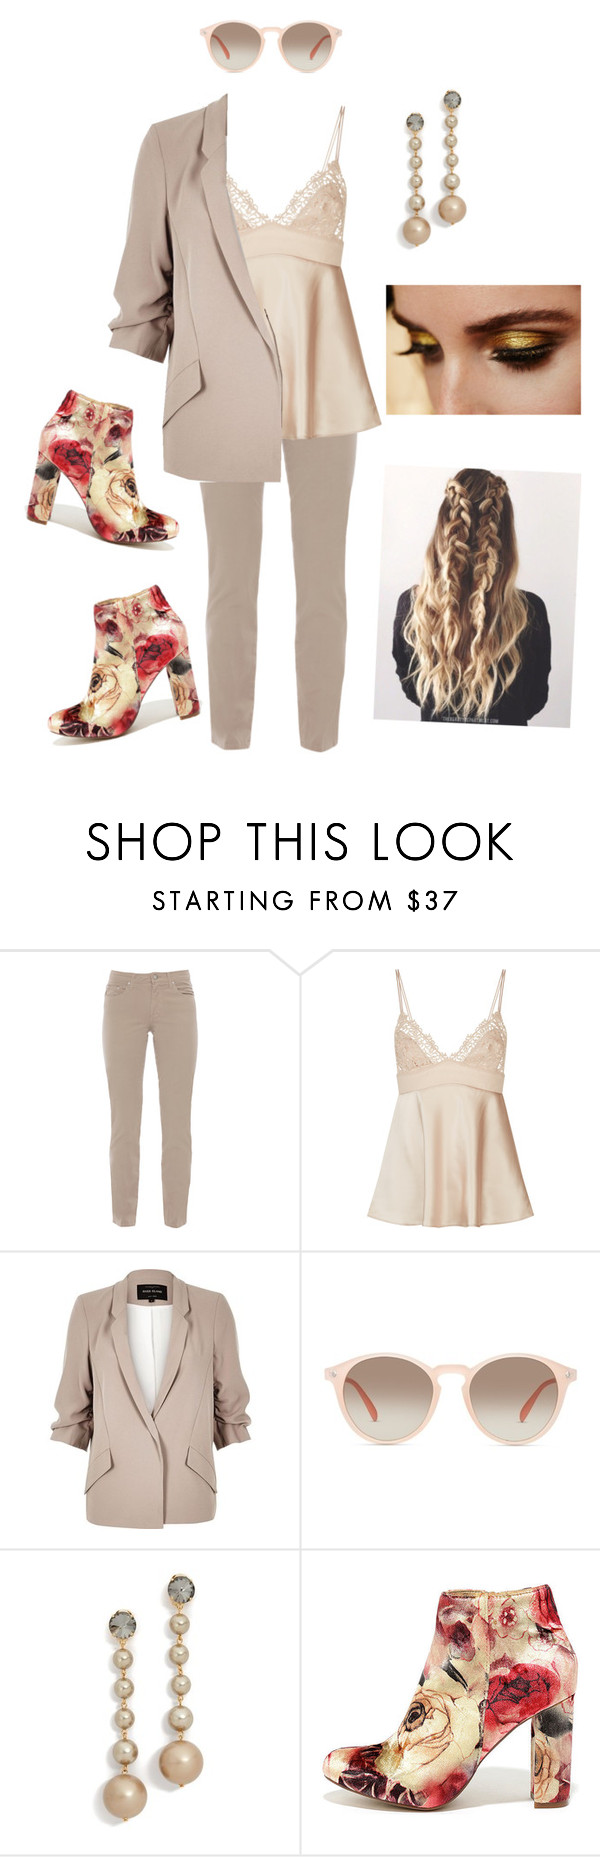 """""""beige2"""" by mariaac2 ❤ liked on Polyvore featuring Fabrizio Gianni, River Island, GlassesUSA, Marni, Pat McGrath and Liliana"""